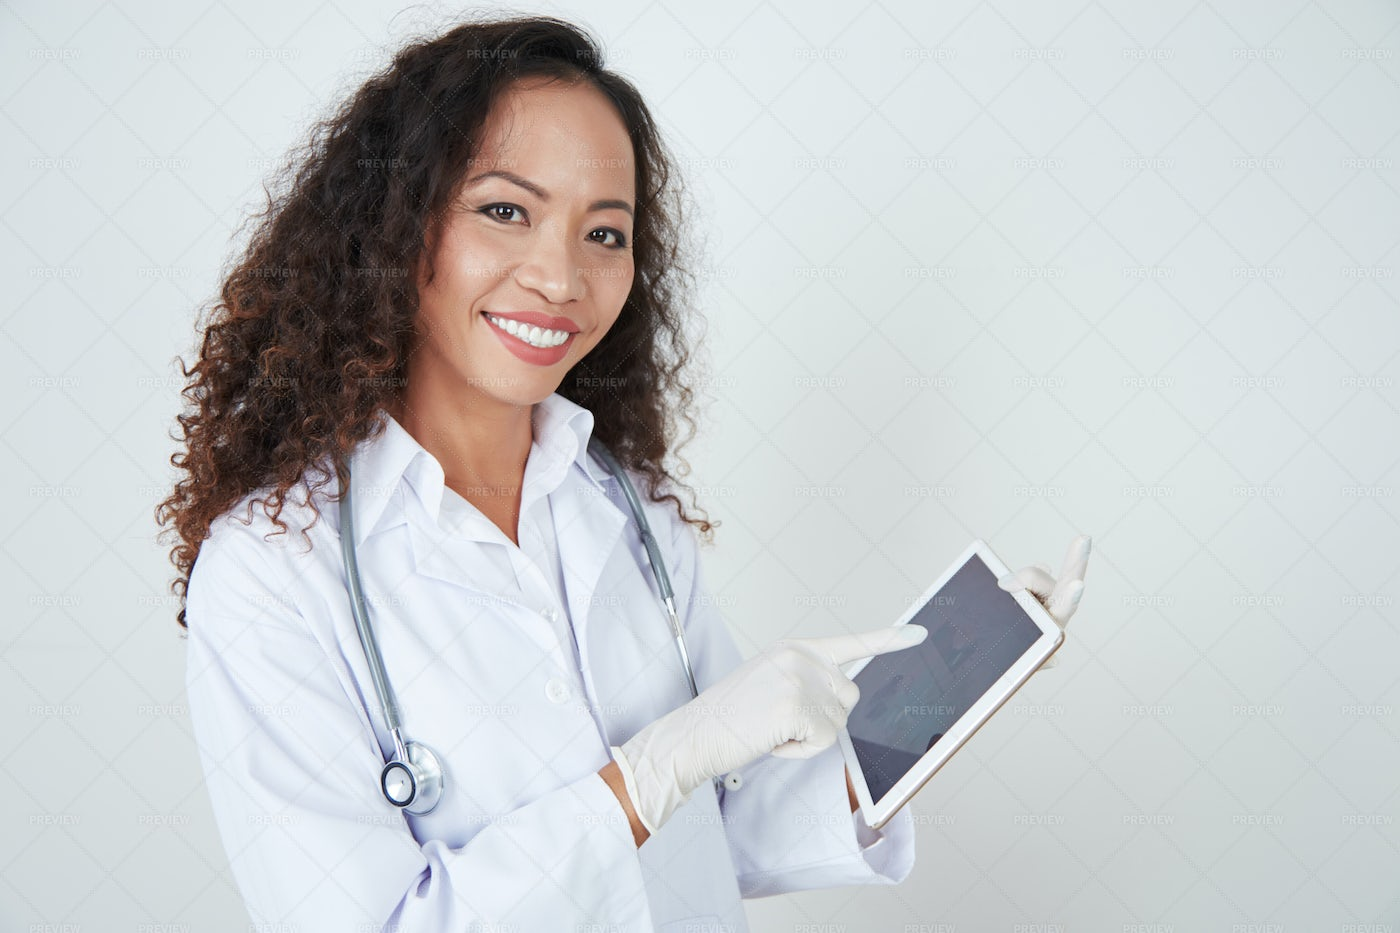 Positive Doctor With Digital Tablet: Stock Photos